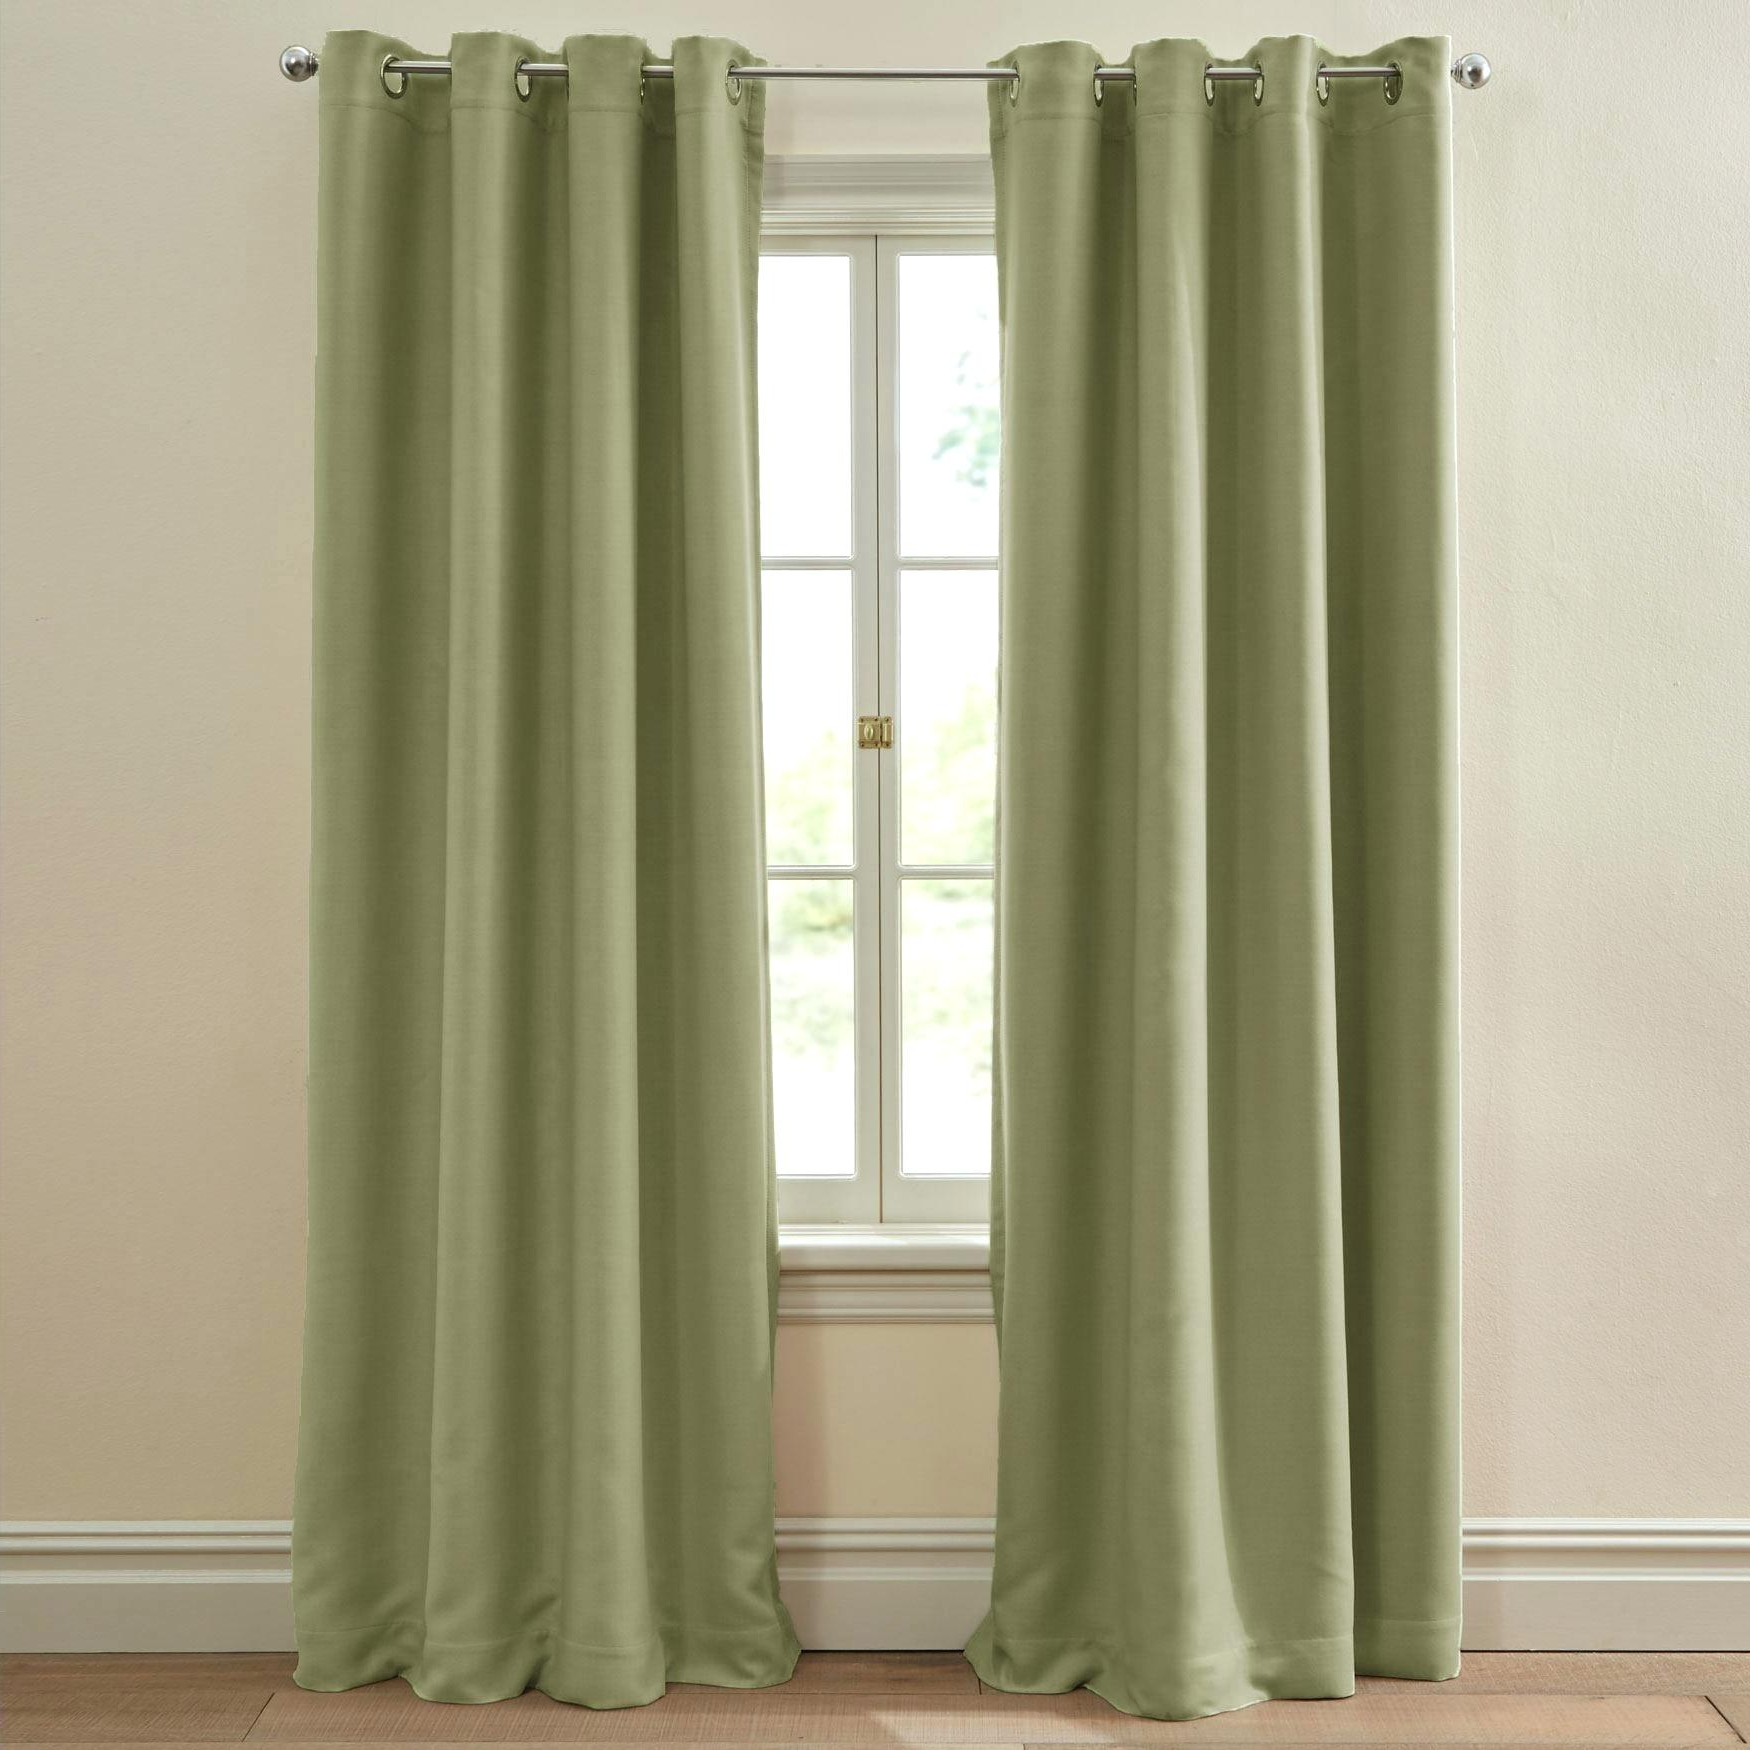 Gromet Panel Curtains – Bshteam (View 16 of 20)